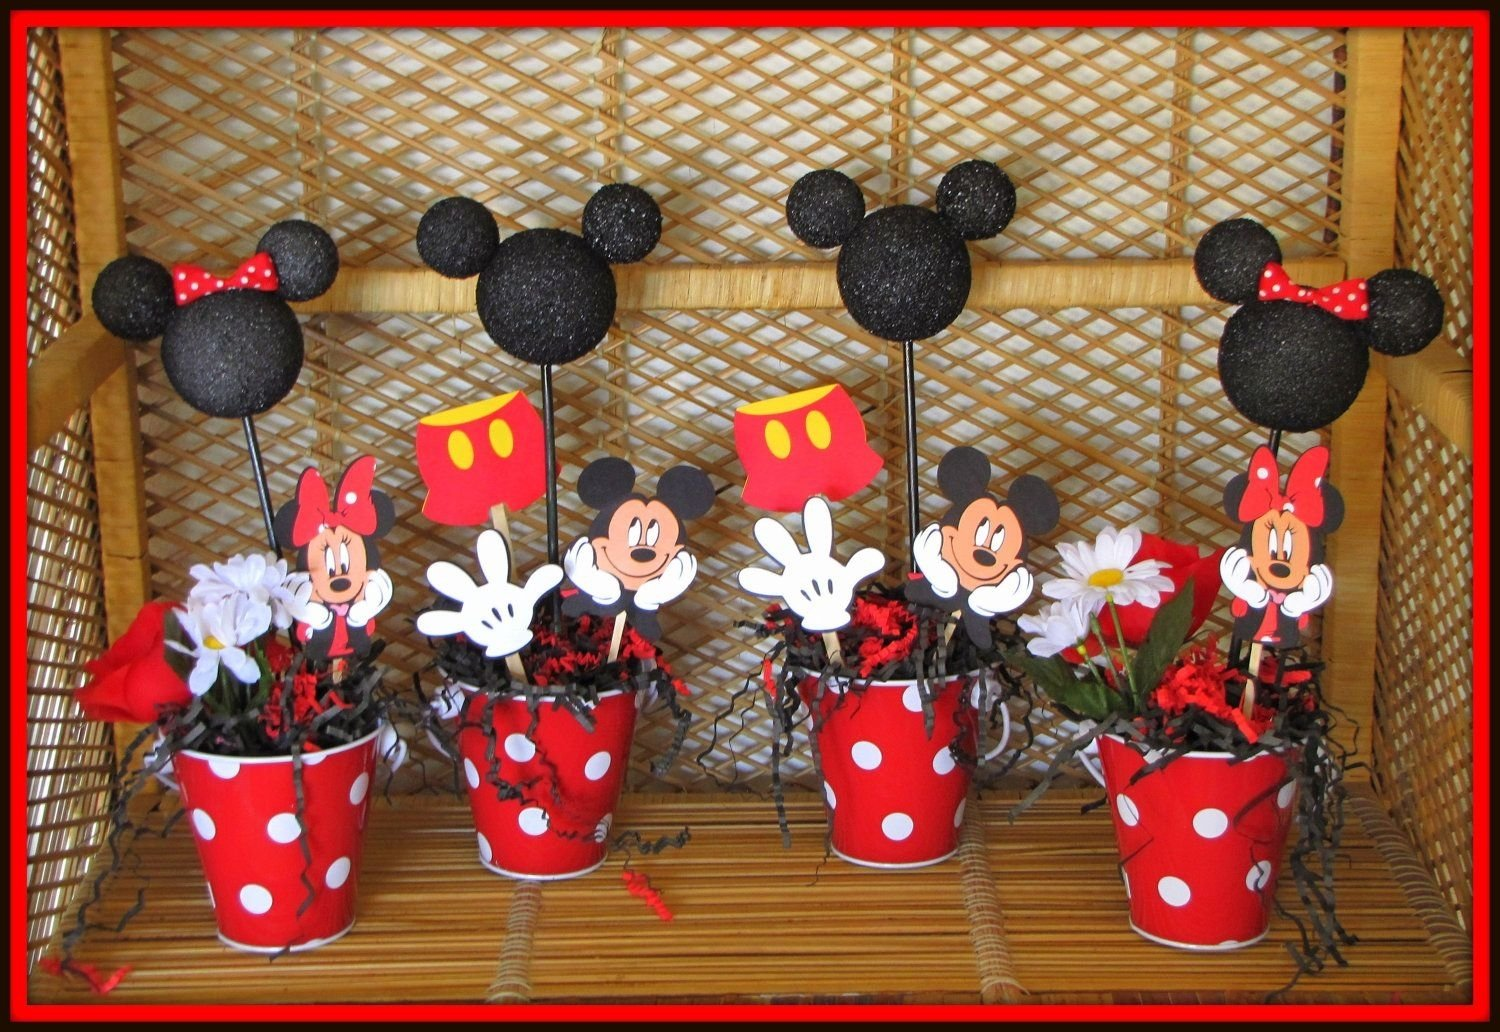 10 Lovely Mickey Mouse Party Decorations Ideas minnie and mickey party decorations photos mickey mouse birthday 5 2020